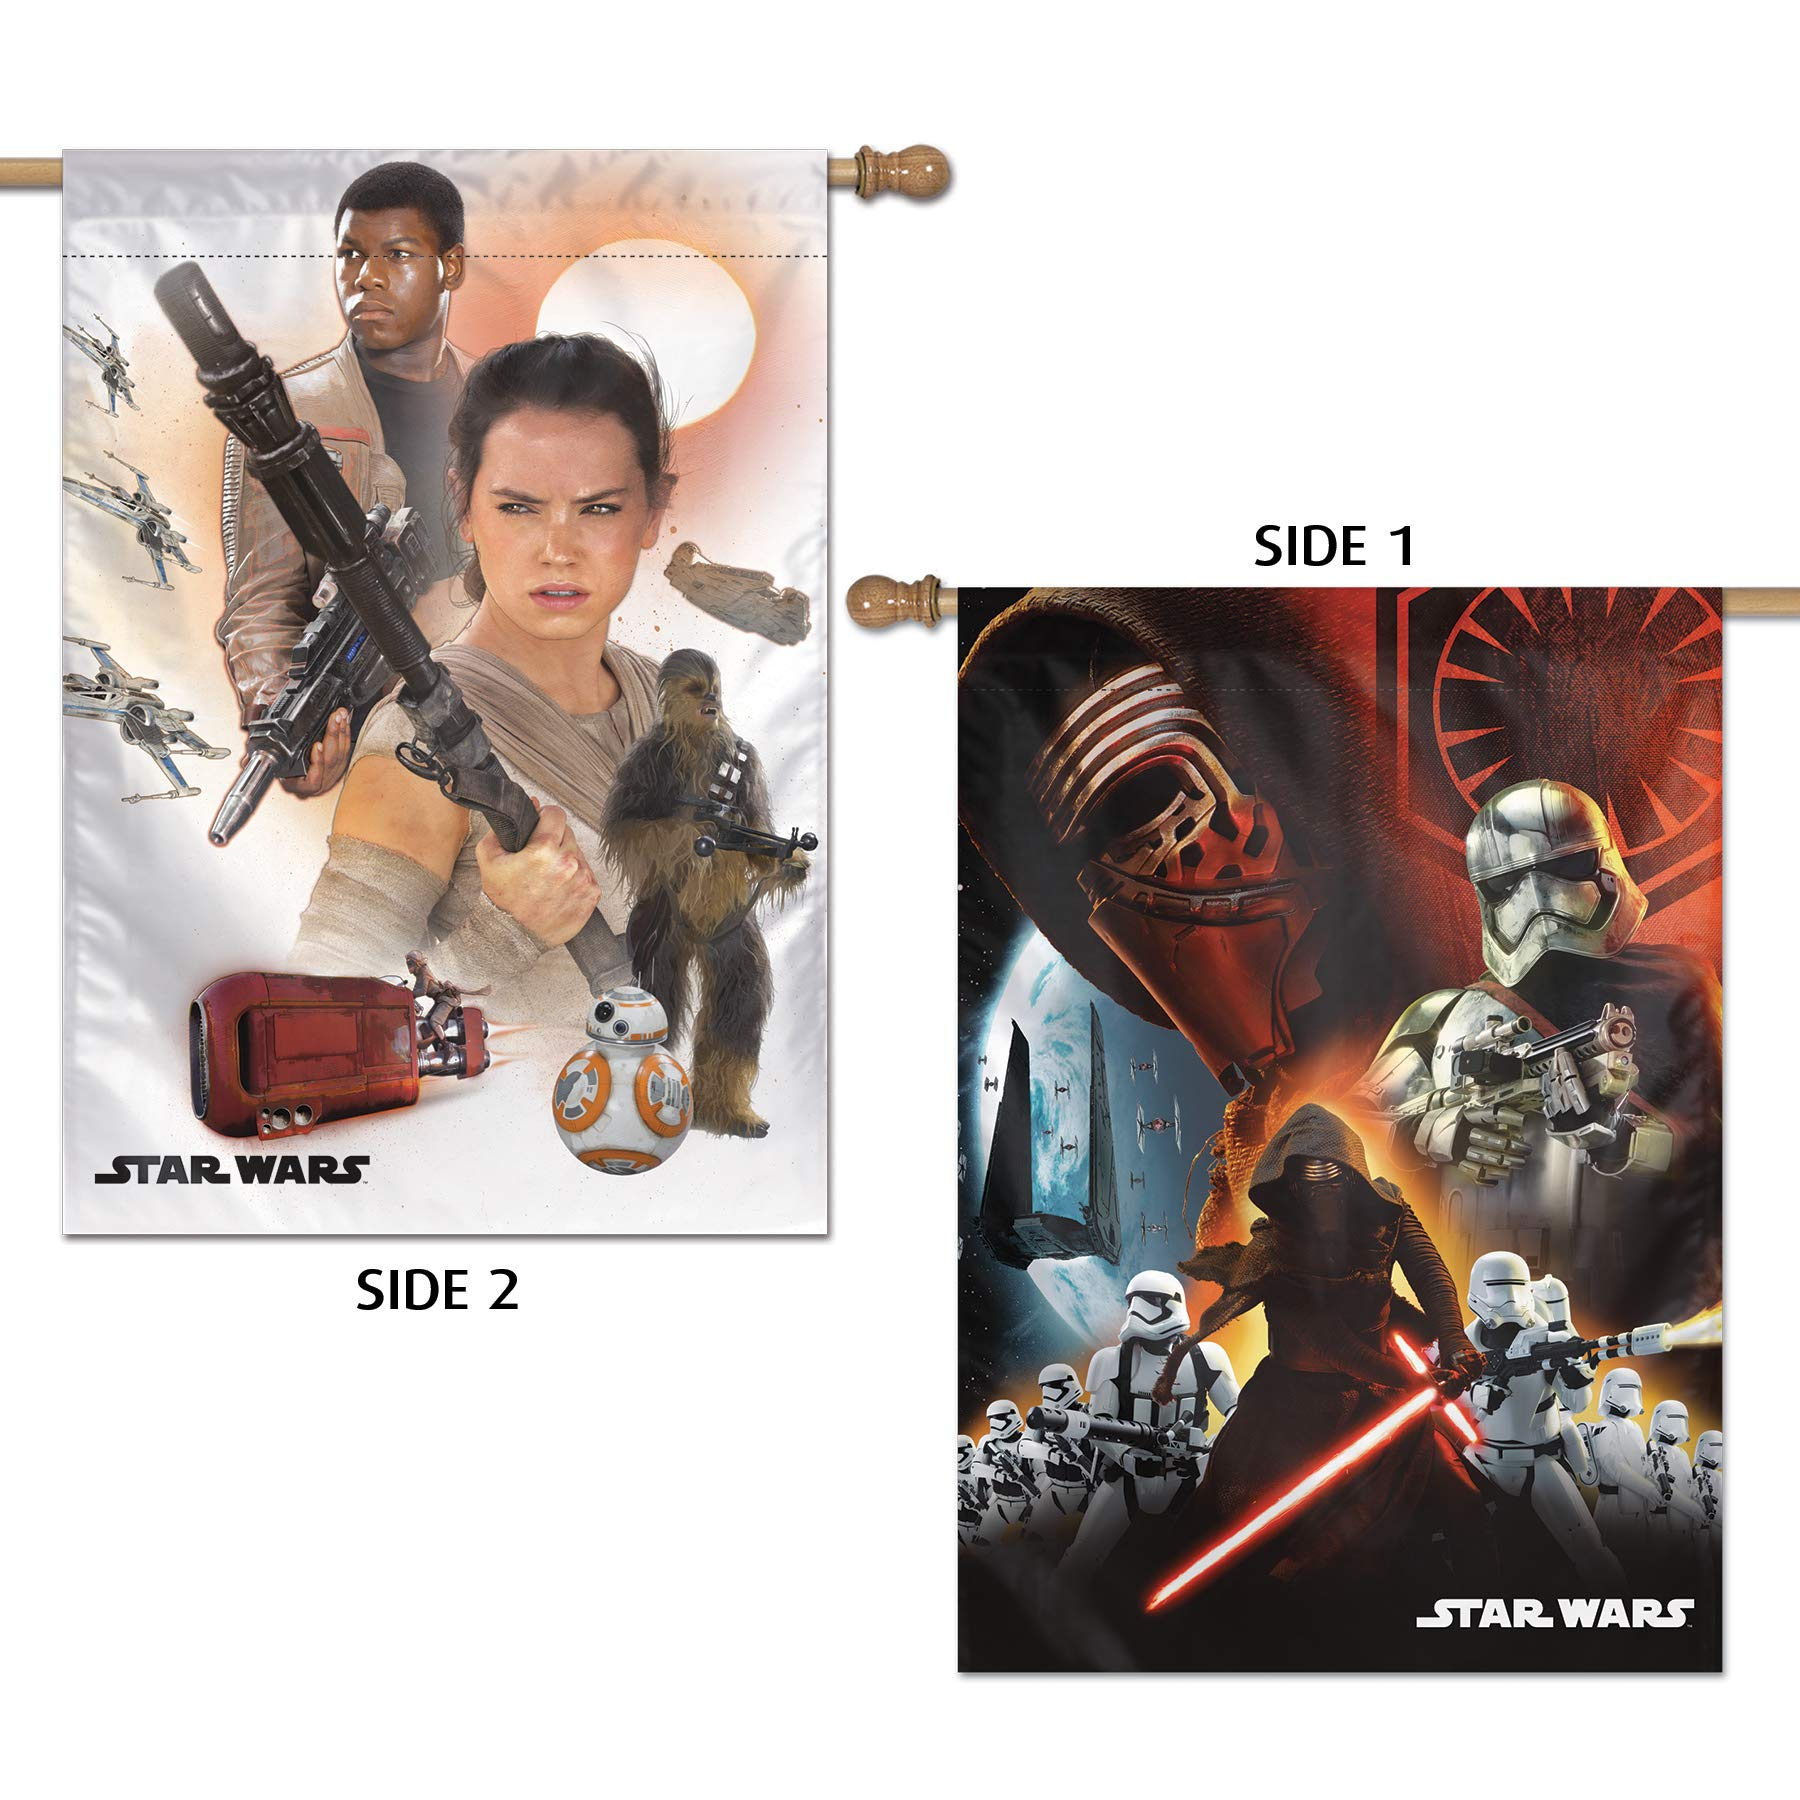 WinCraft Star Wars Star Wars Star Wars/New Trilogy Force Awakens 28'' x 40'' Vertical Flag 2 SidedWinCraft Star Wars/New Trilogy Force Awakens 28'' x 40'' Vertical Flag 2 Sided, Multicolor, NA by WinCraft